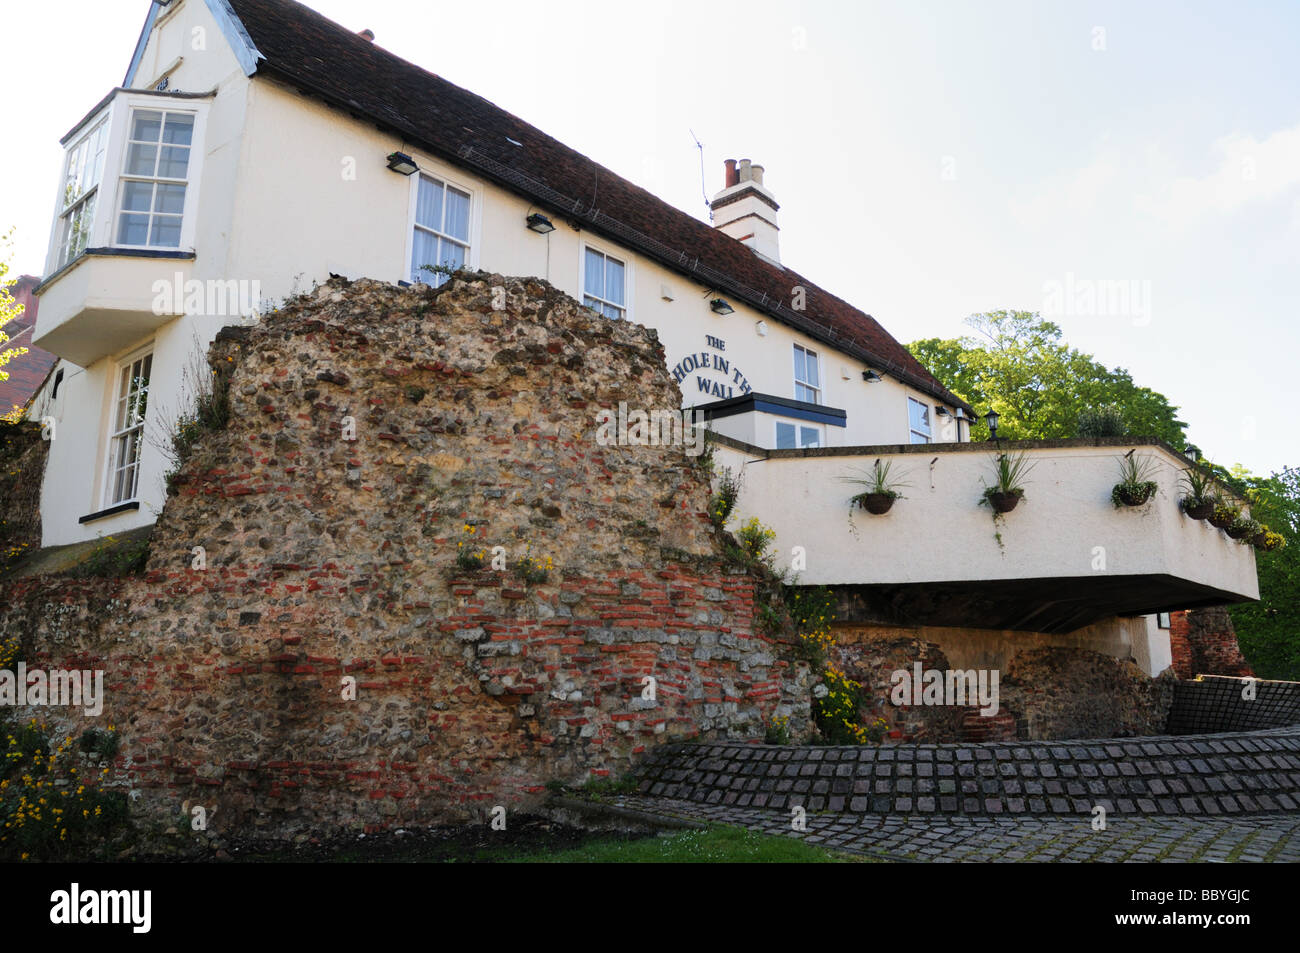 The Hole in the Wall public house built in part of the old roman wall Colchester Essex - Stock Image